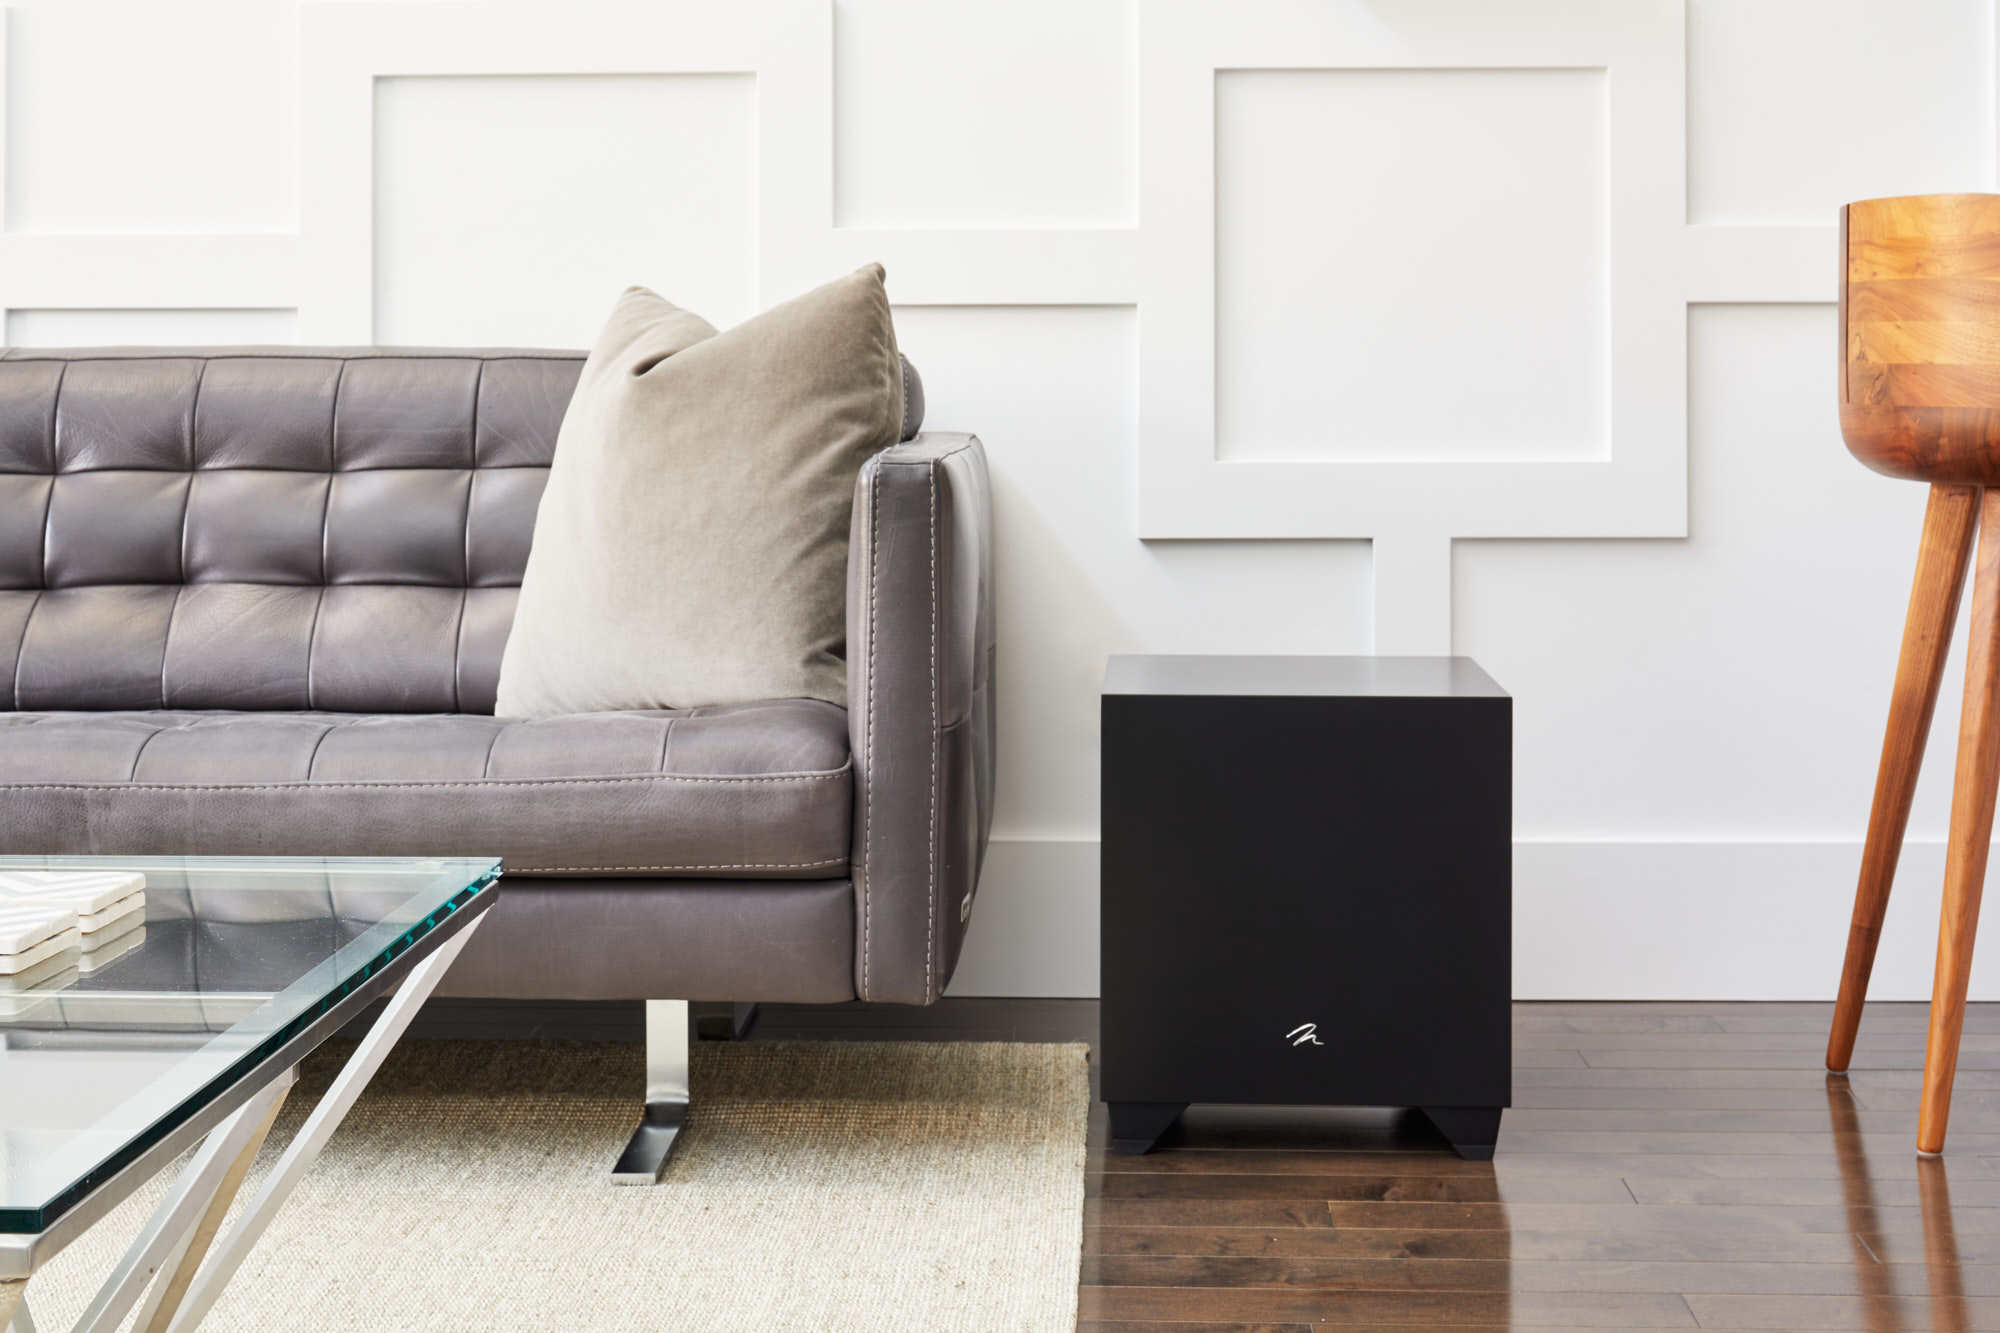 Subwoofer_Product_Photography